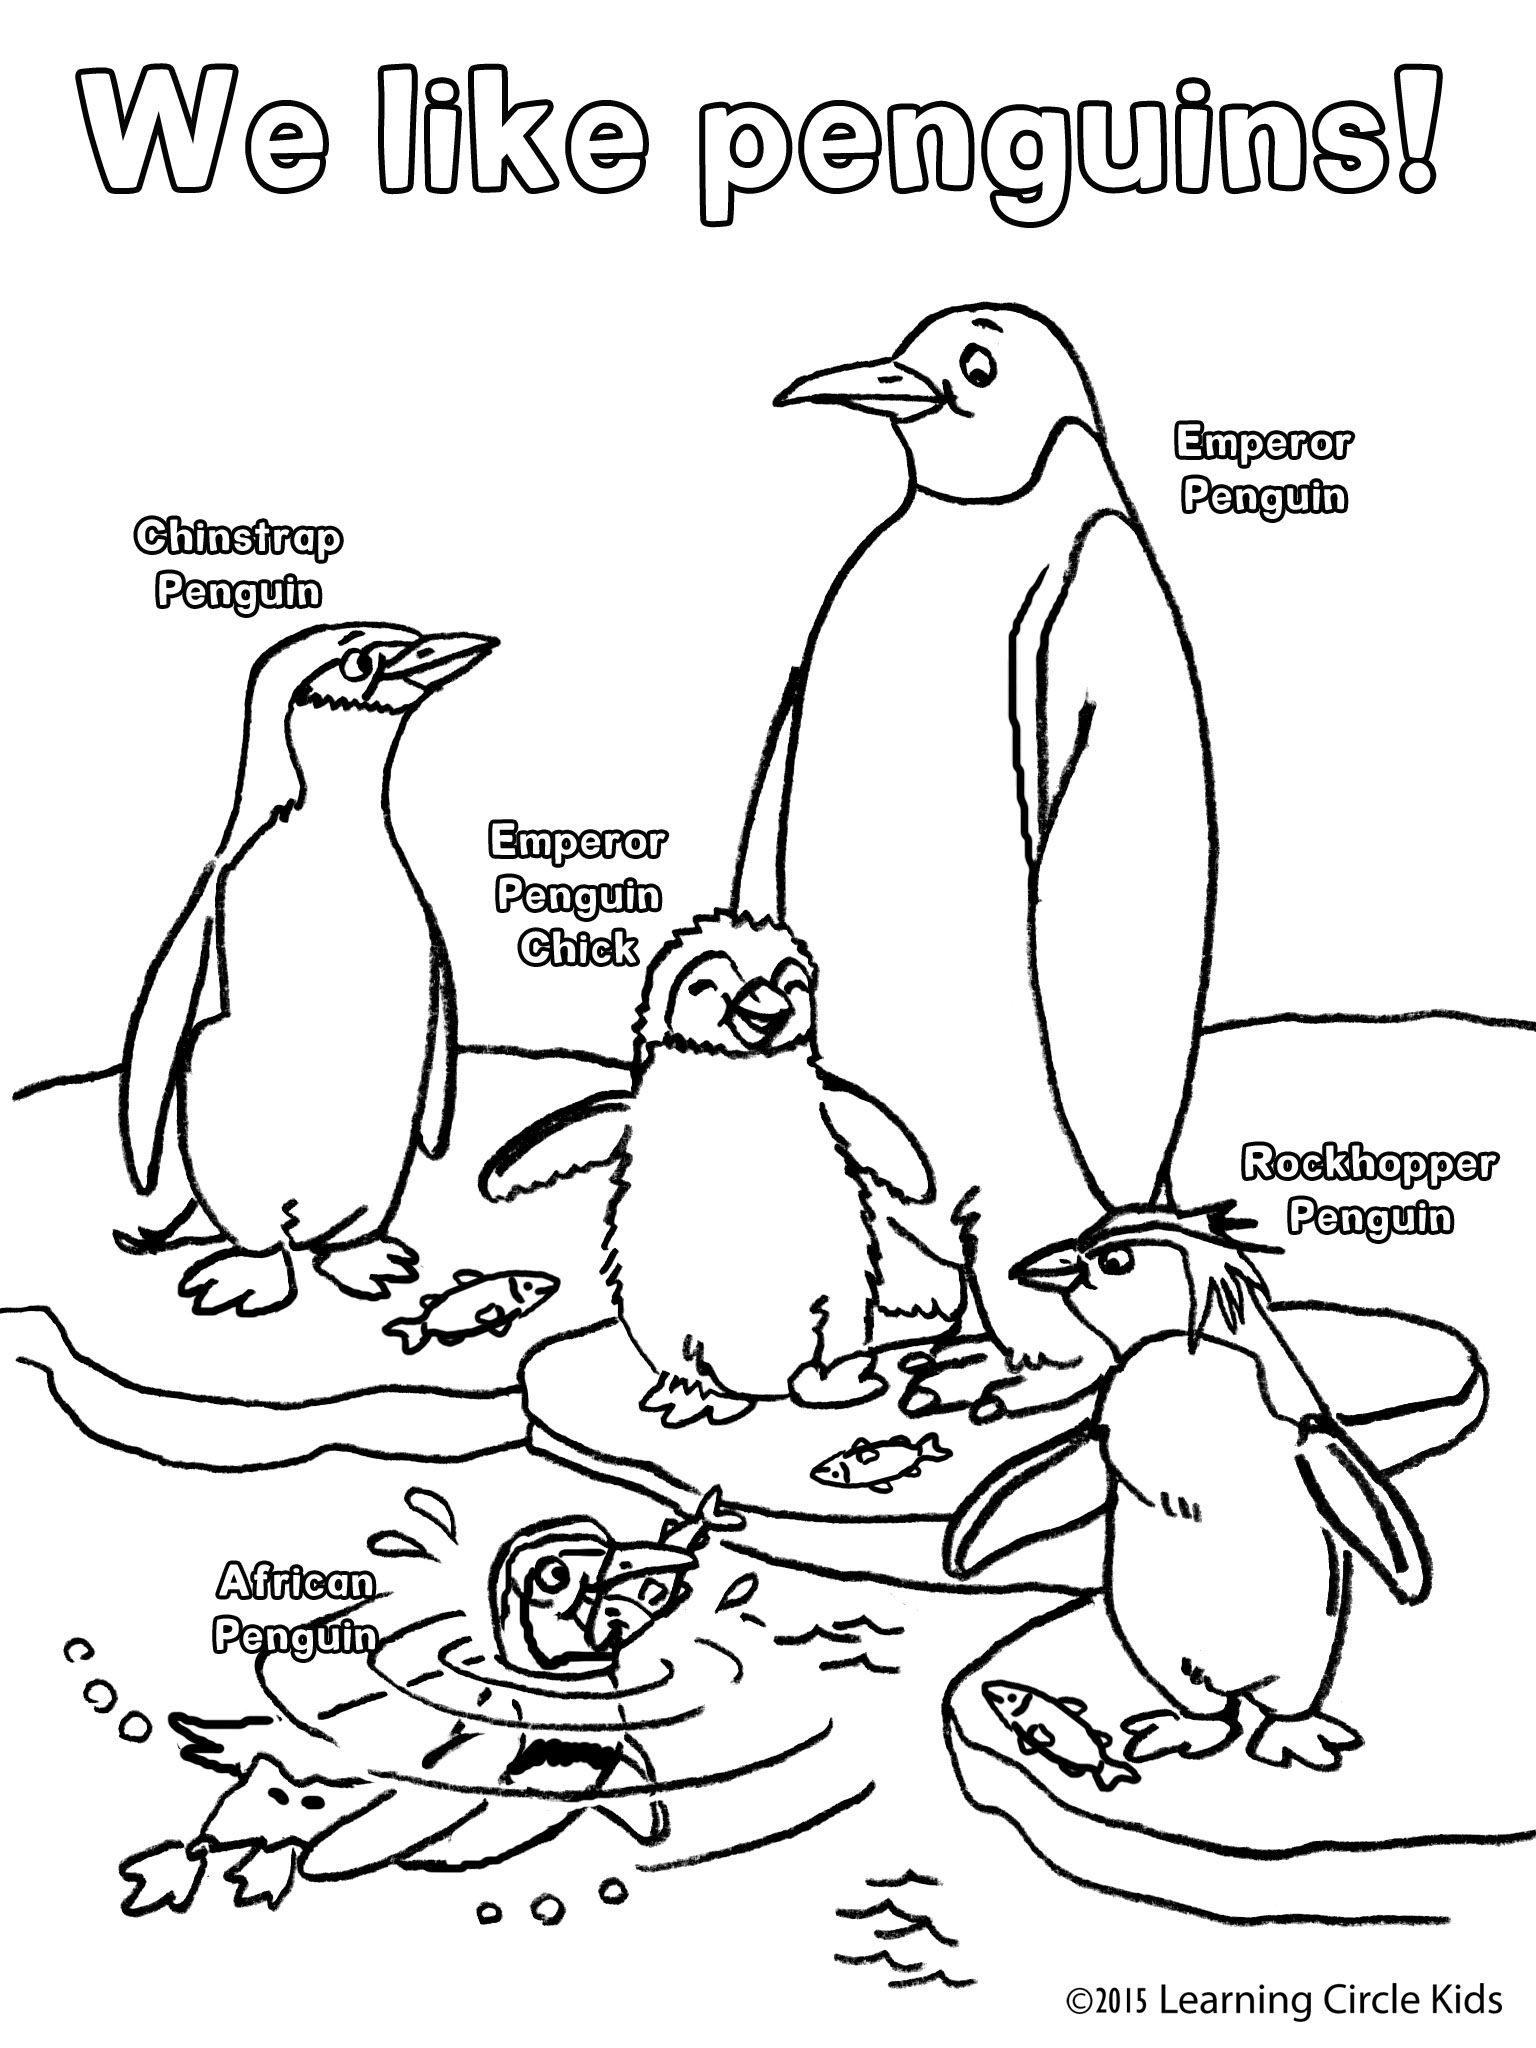 Penguin Coloring Pages For Elementary Kids